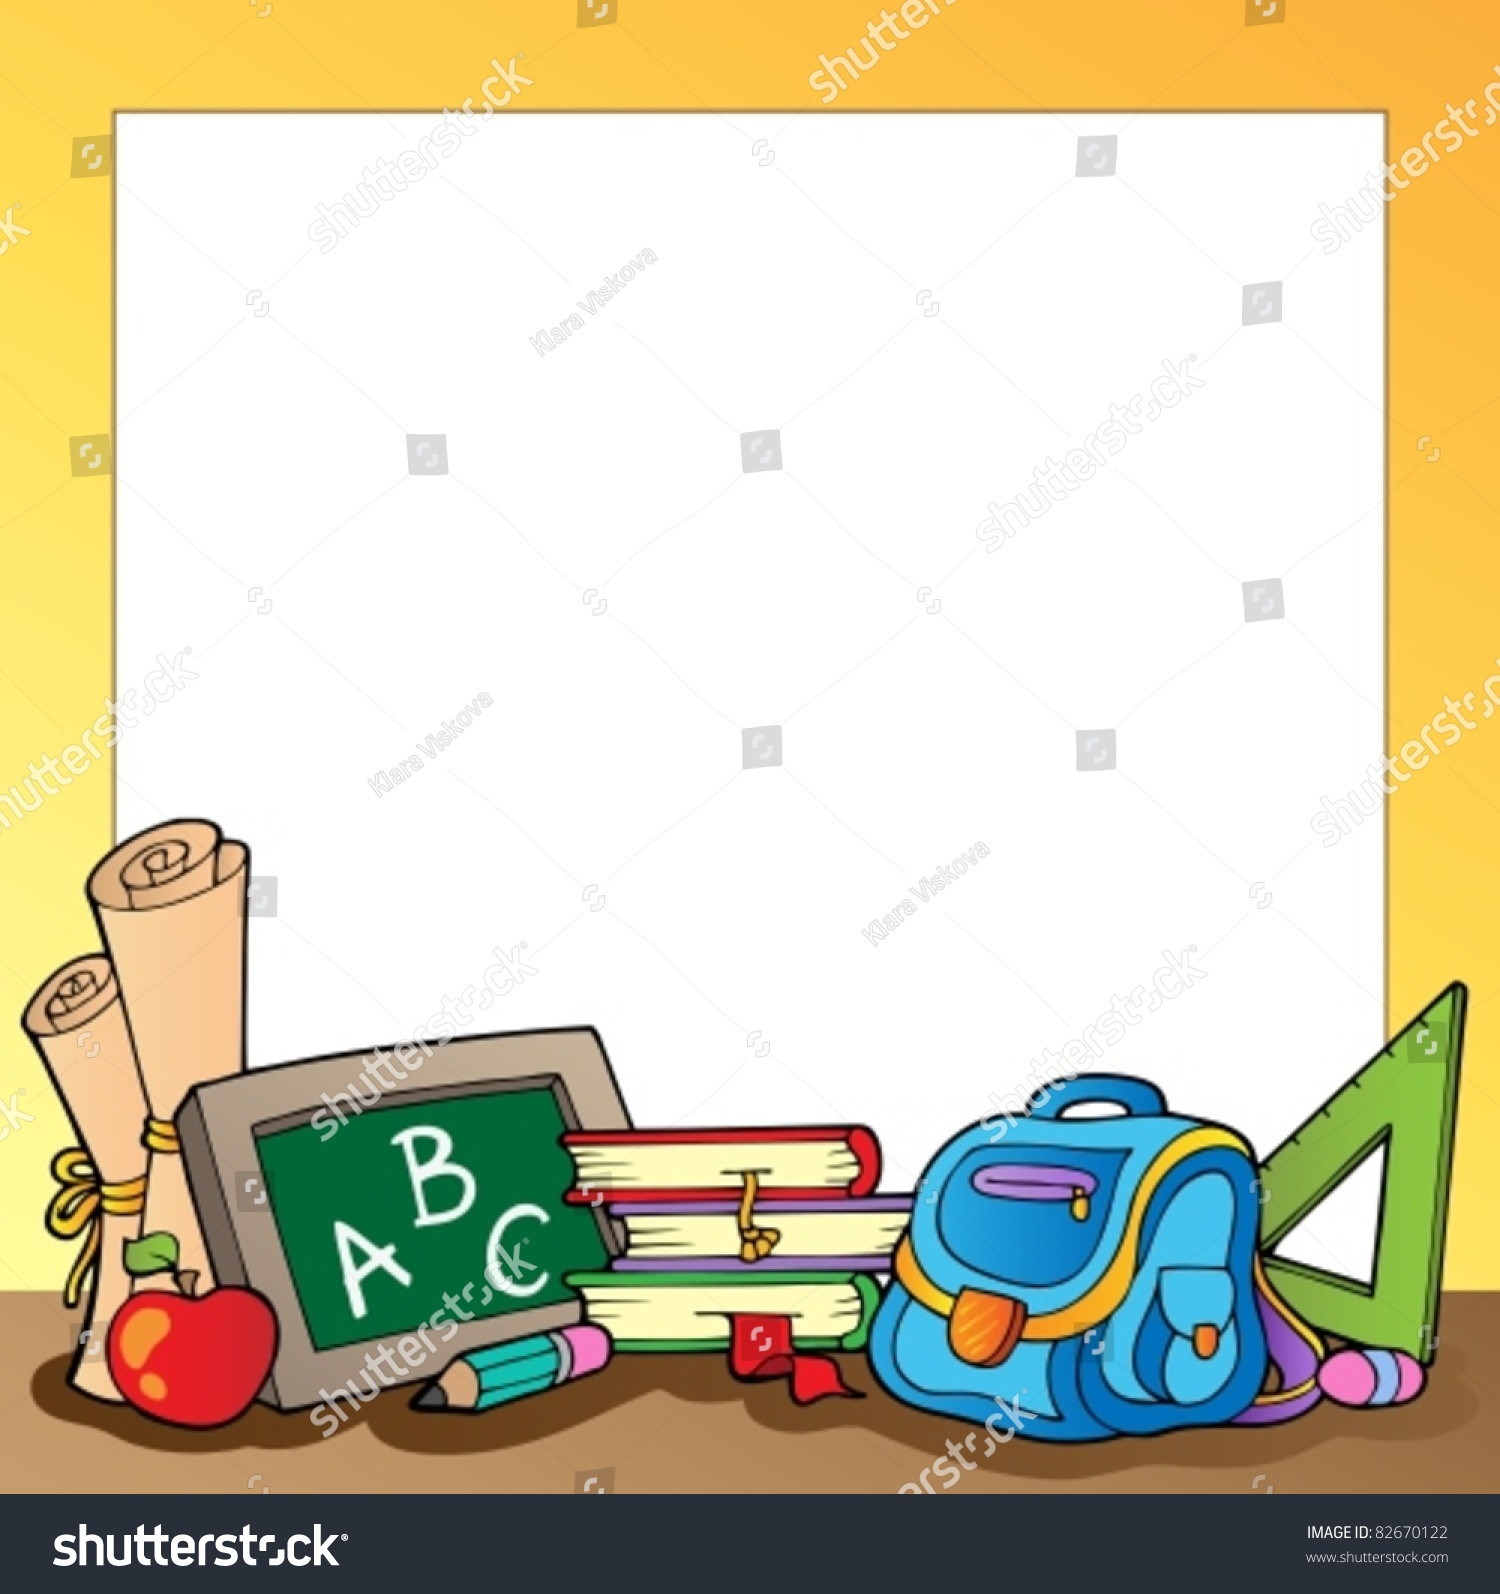 Tafelschwamm clipart  Frame School Supplies 1 Vector Illustration Stock-vektorgrafik ...